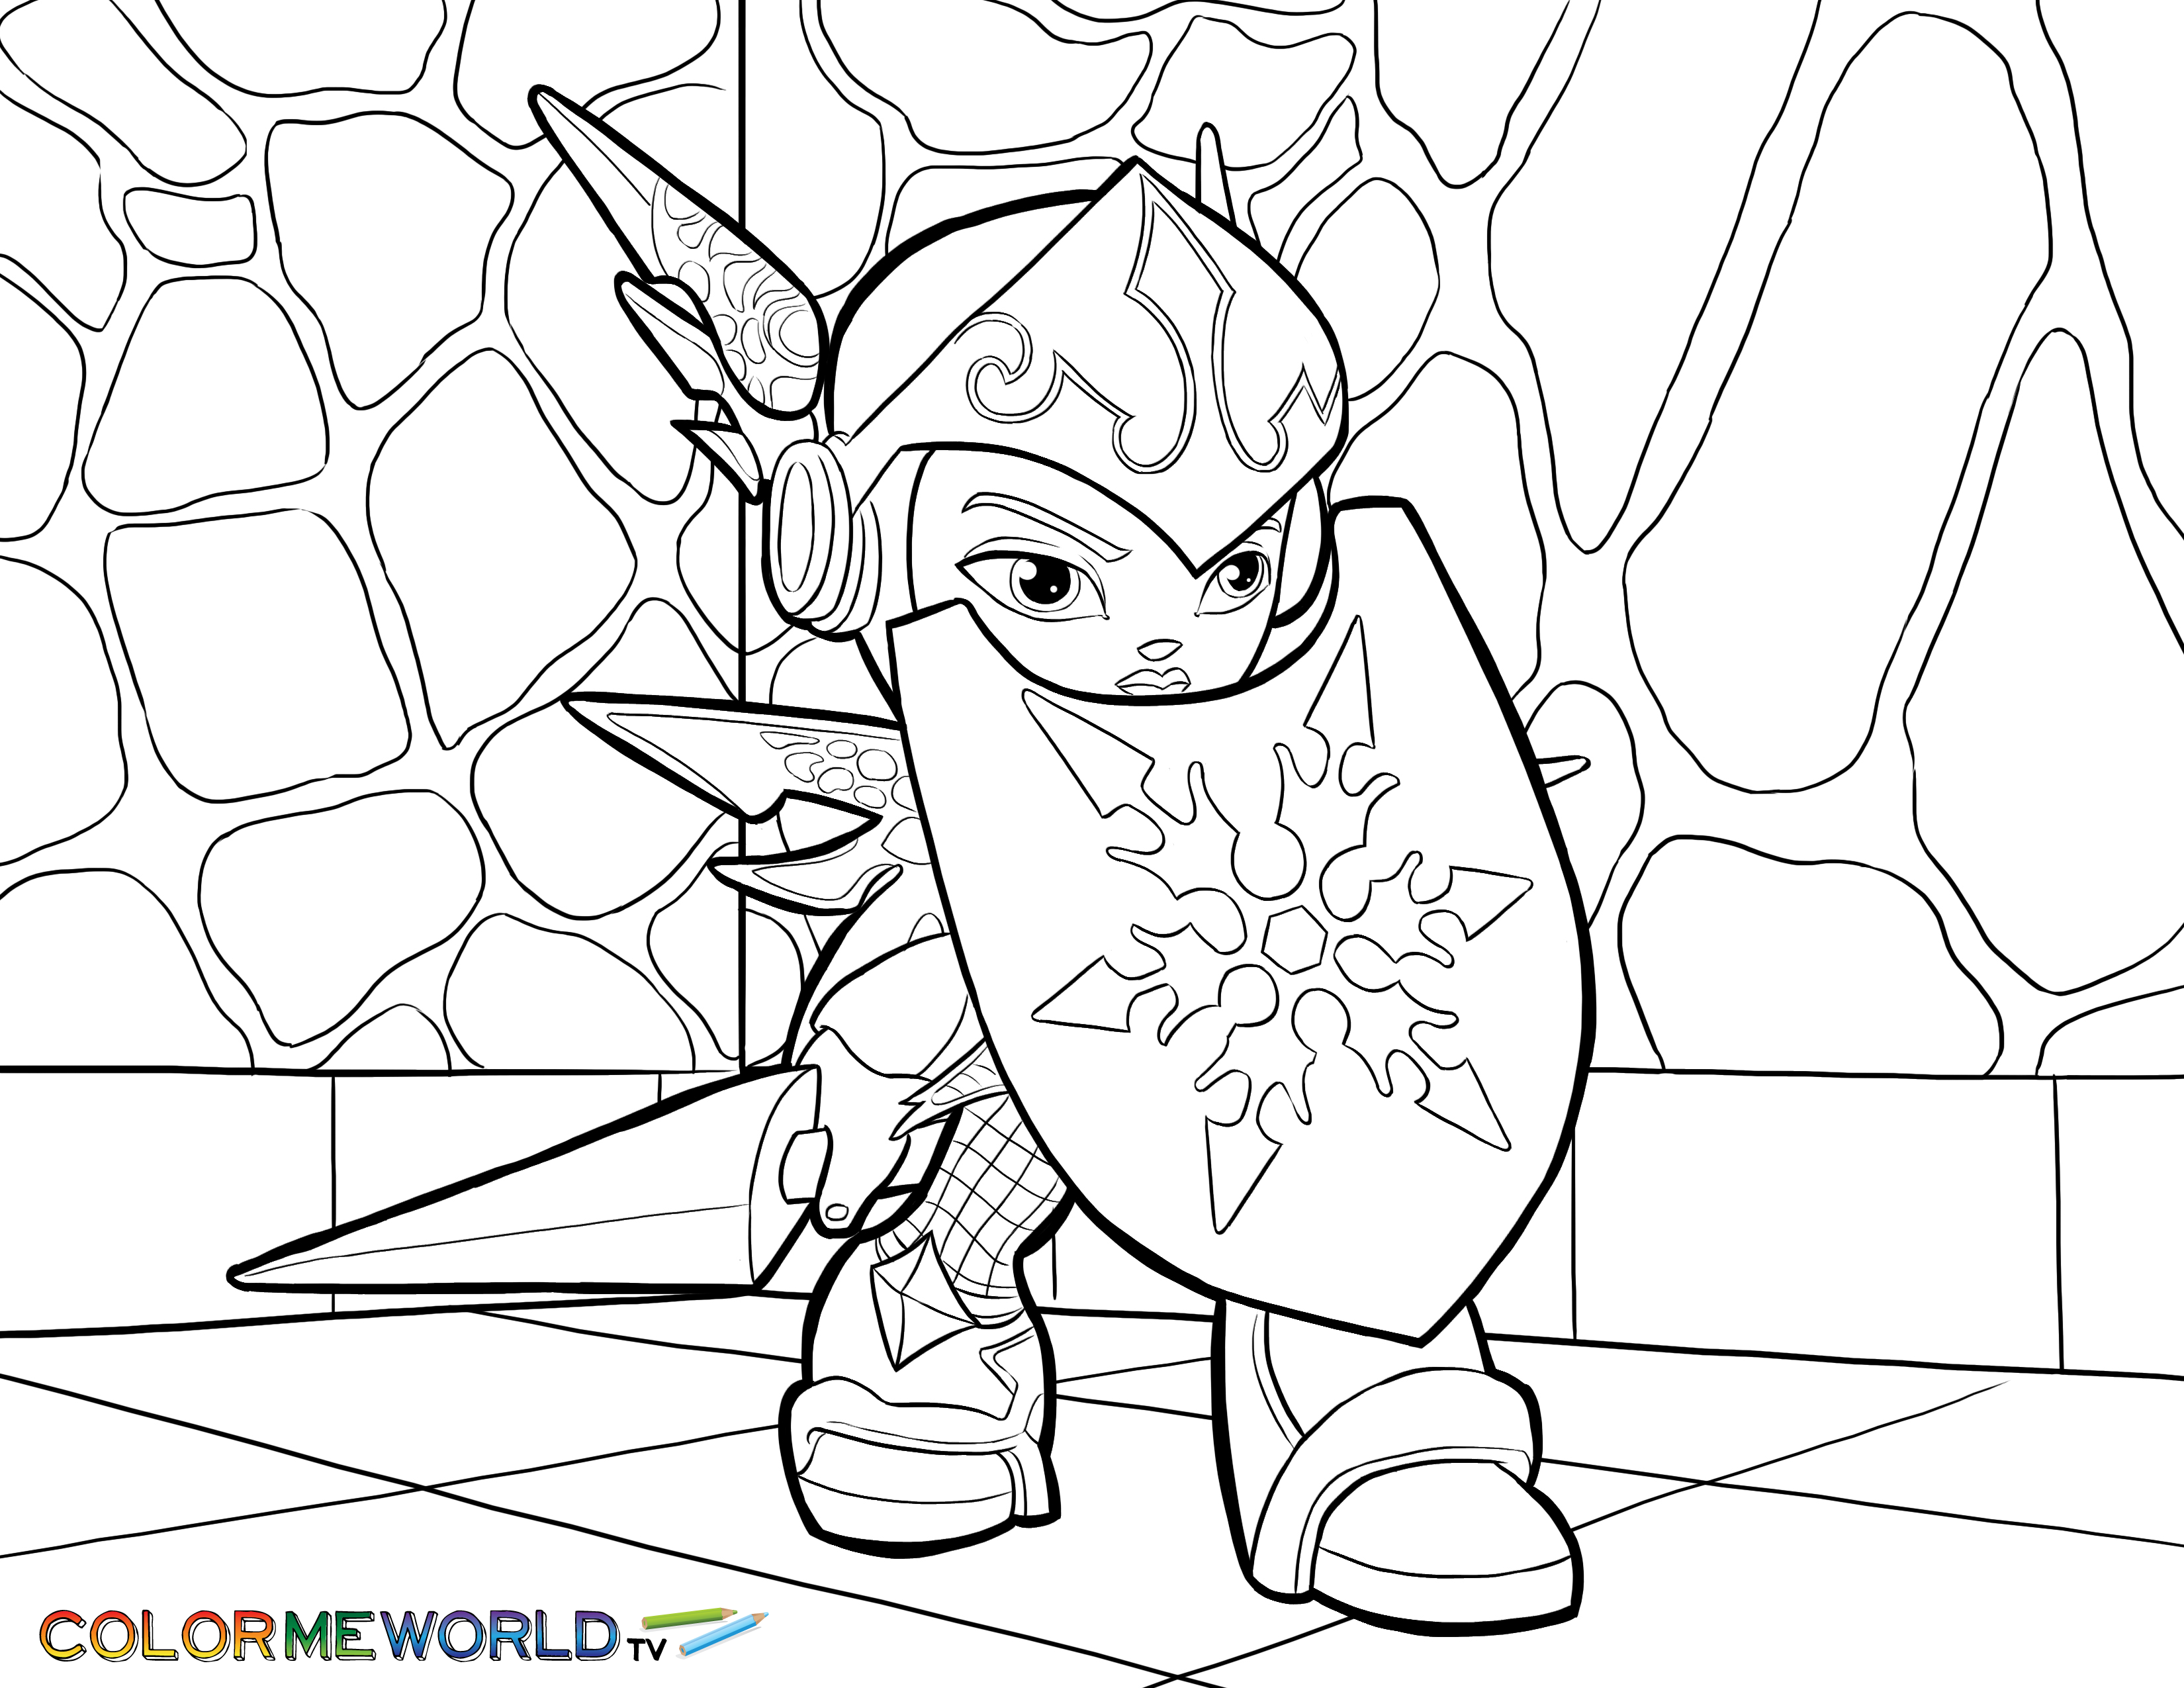 ninjini coloring pages free printable for kids - Skylander Coloring Pages Tree Rex